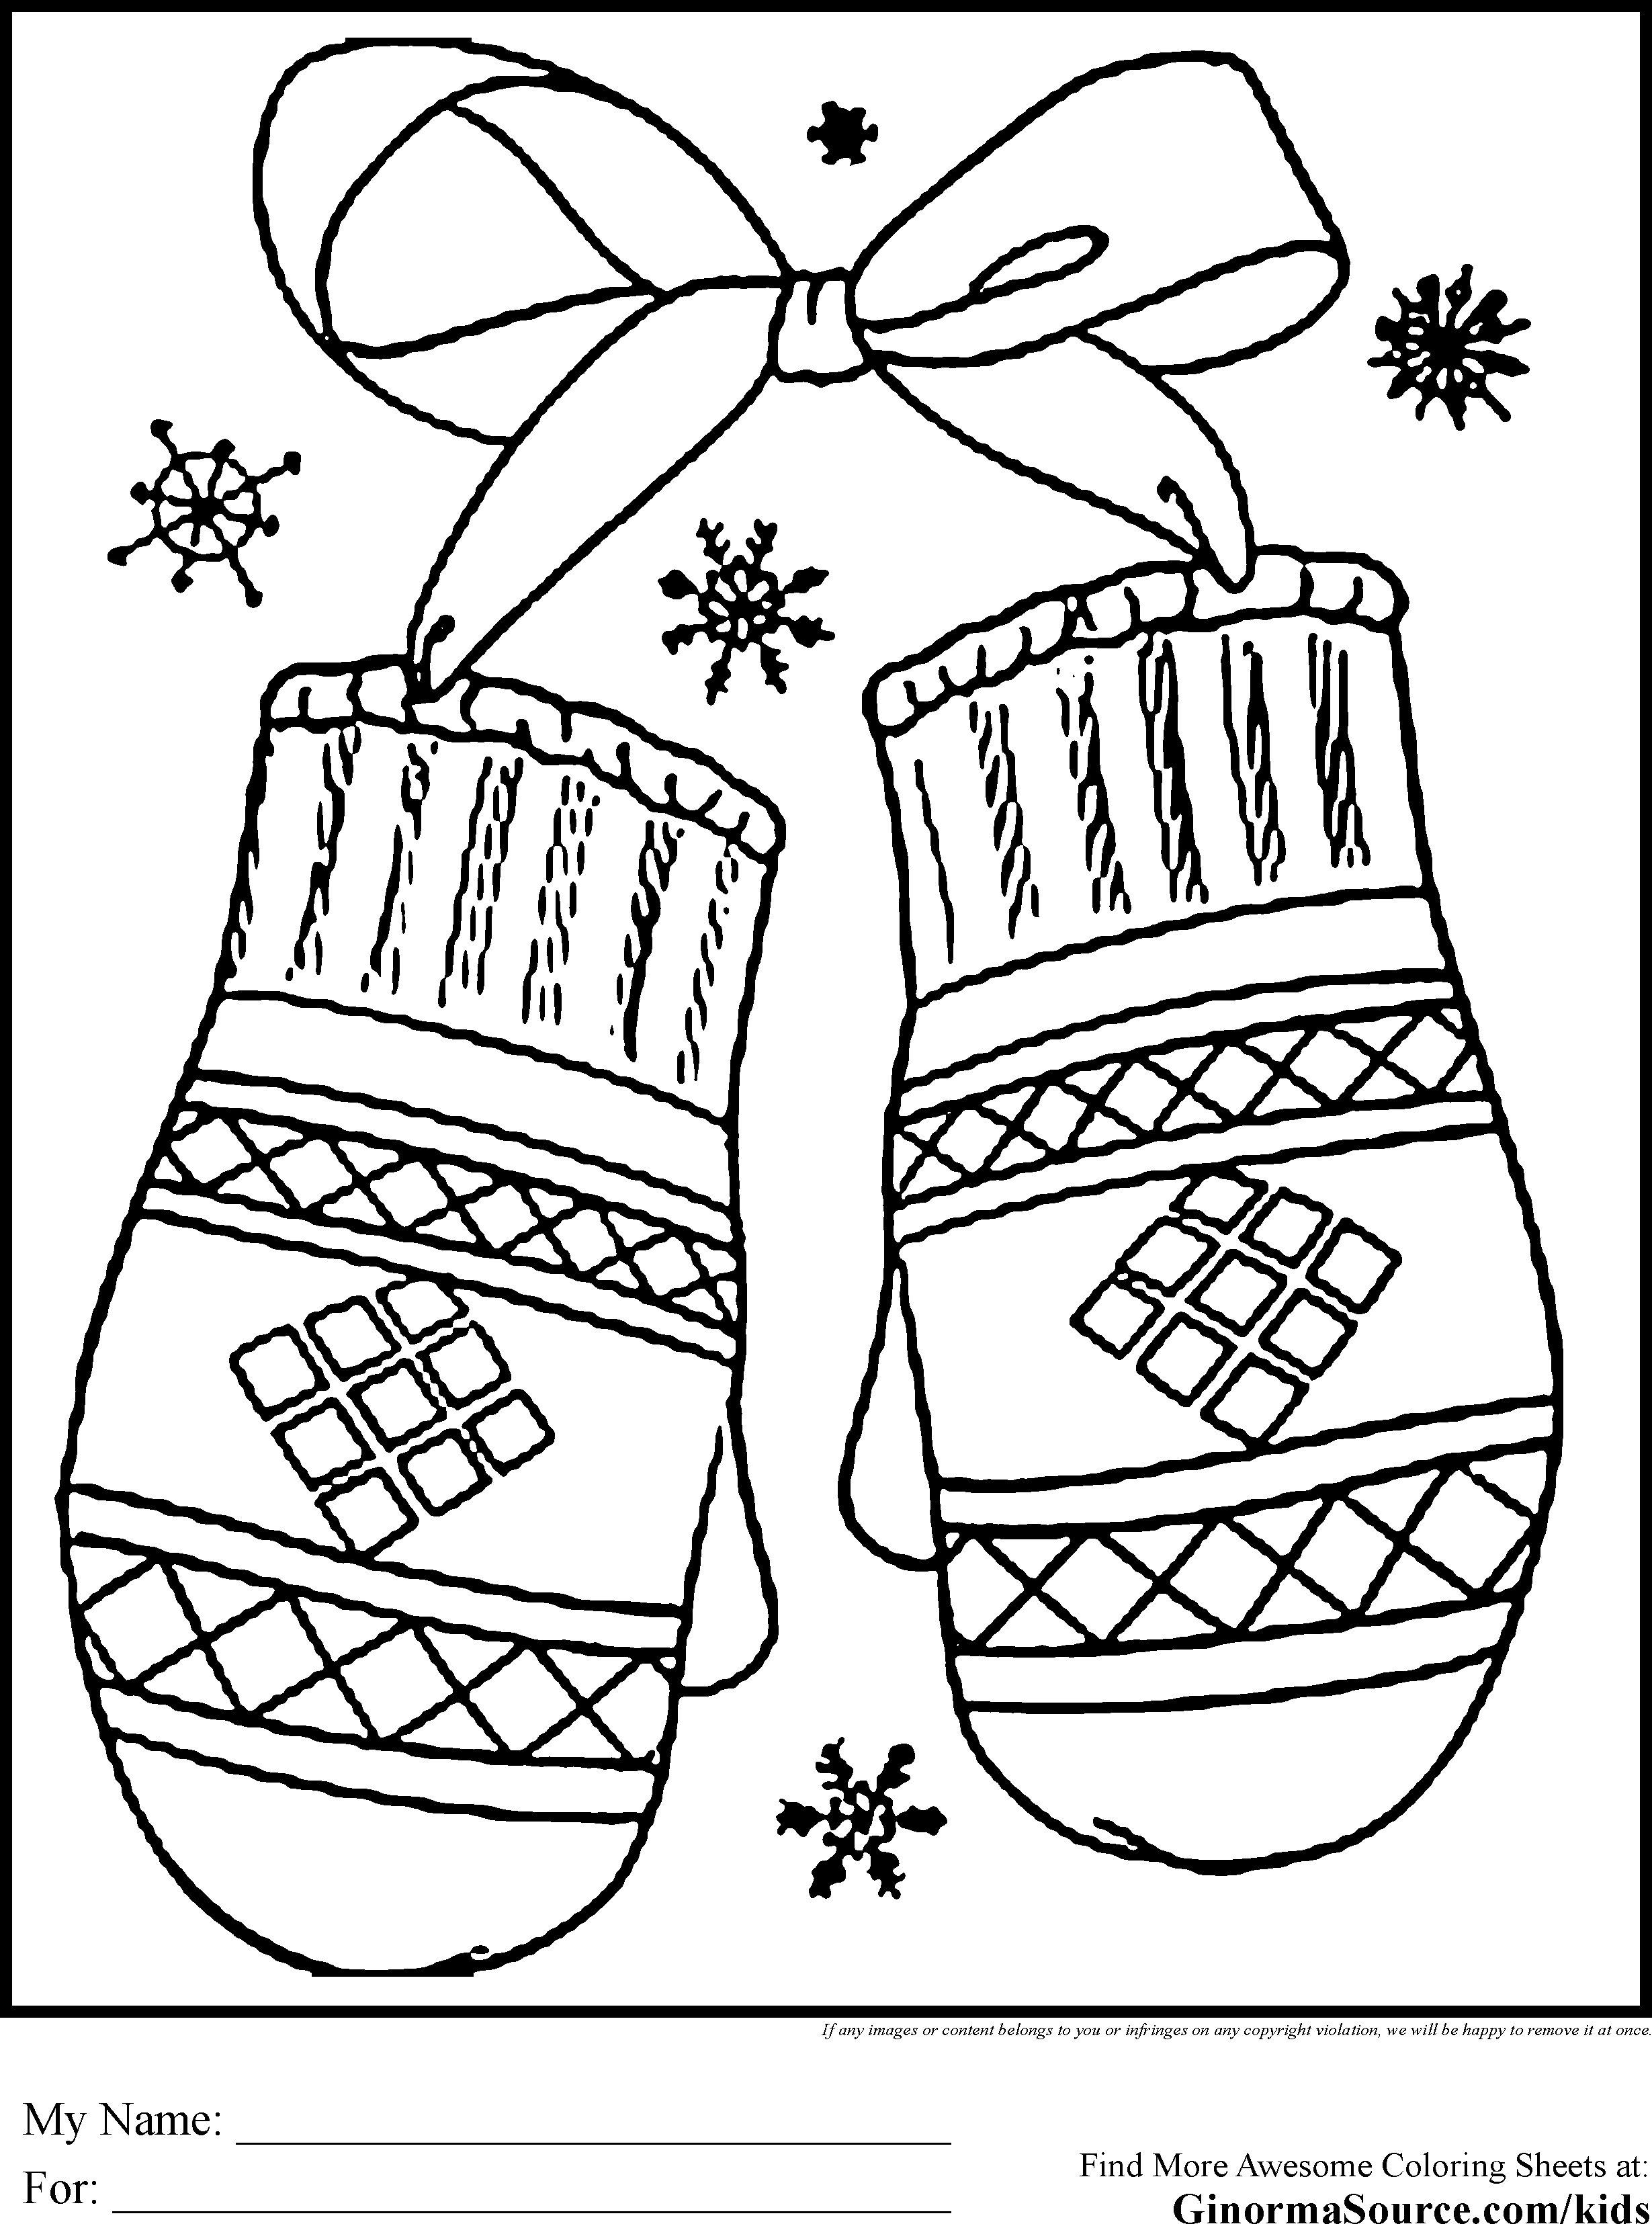 Happy Holidays Coloring Pages For Kids   Drawing with Crayons